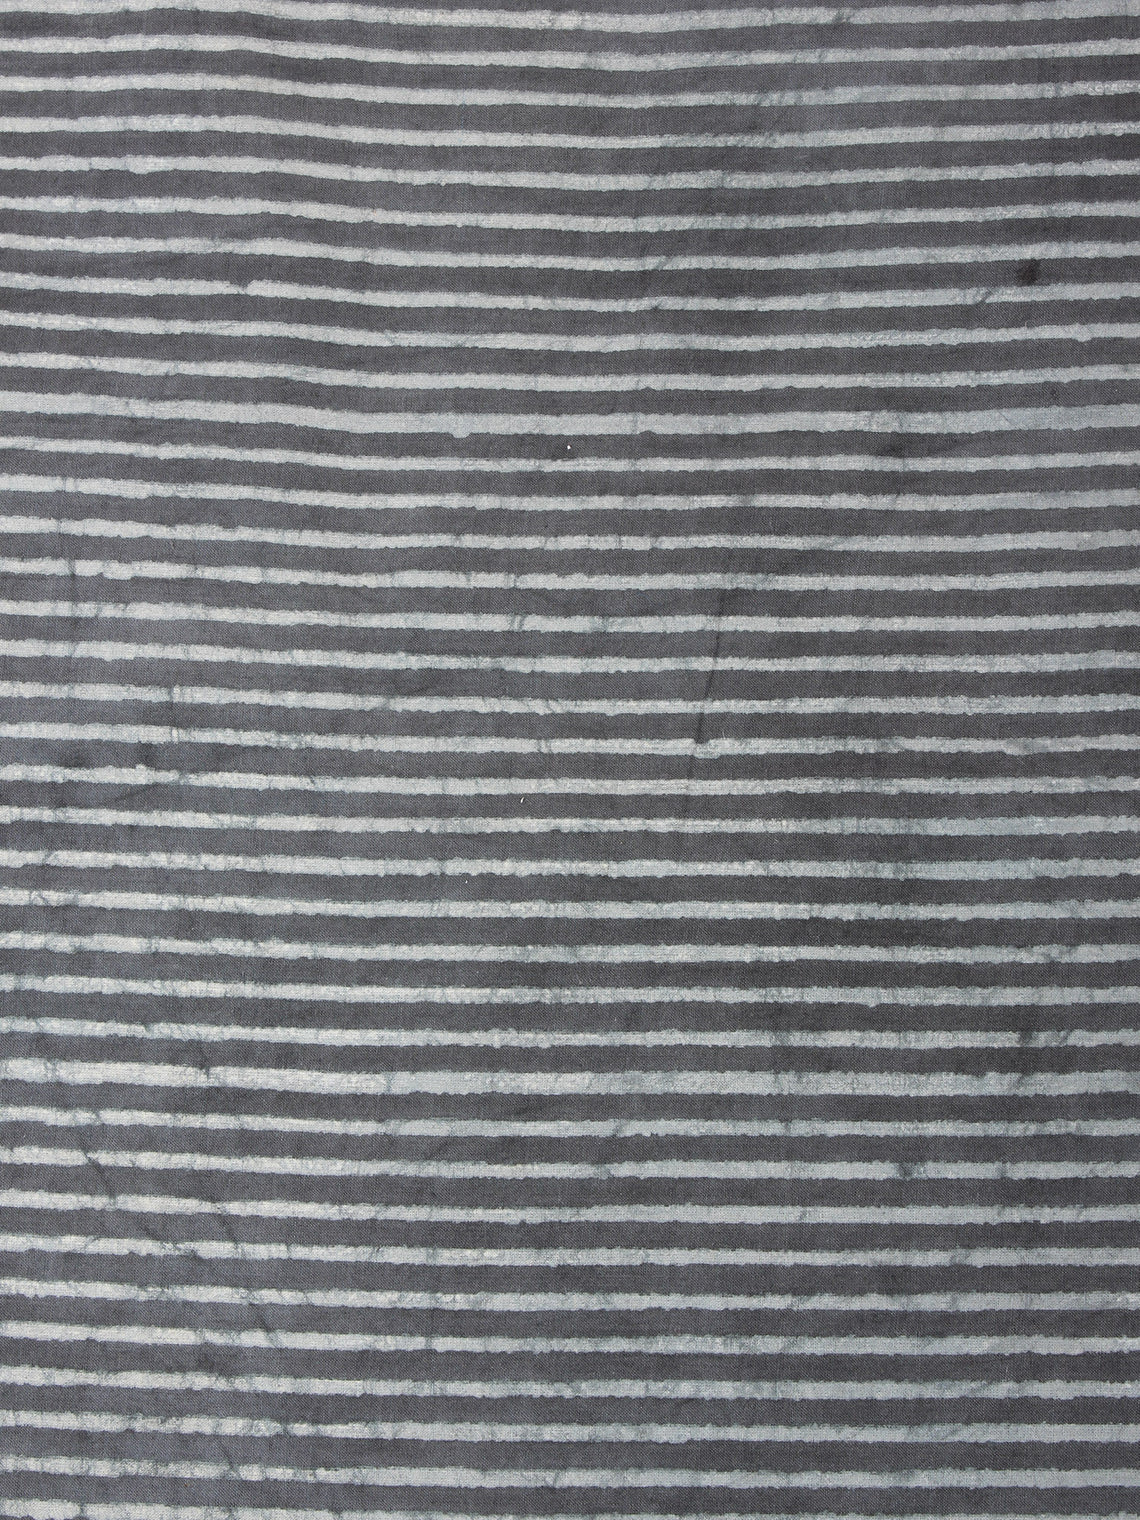 Grey Natural Dyed Hand Block Printed Cotton Fabric Per Meter - F0916250